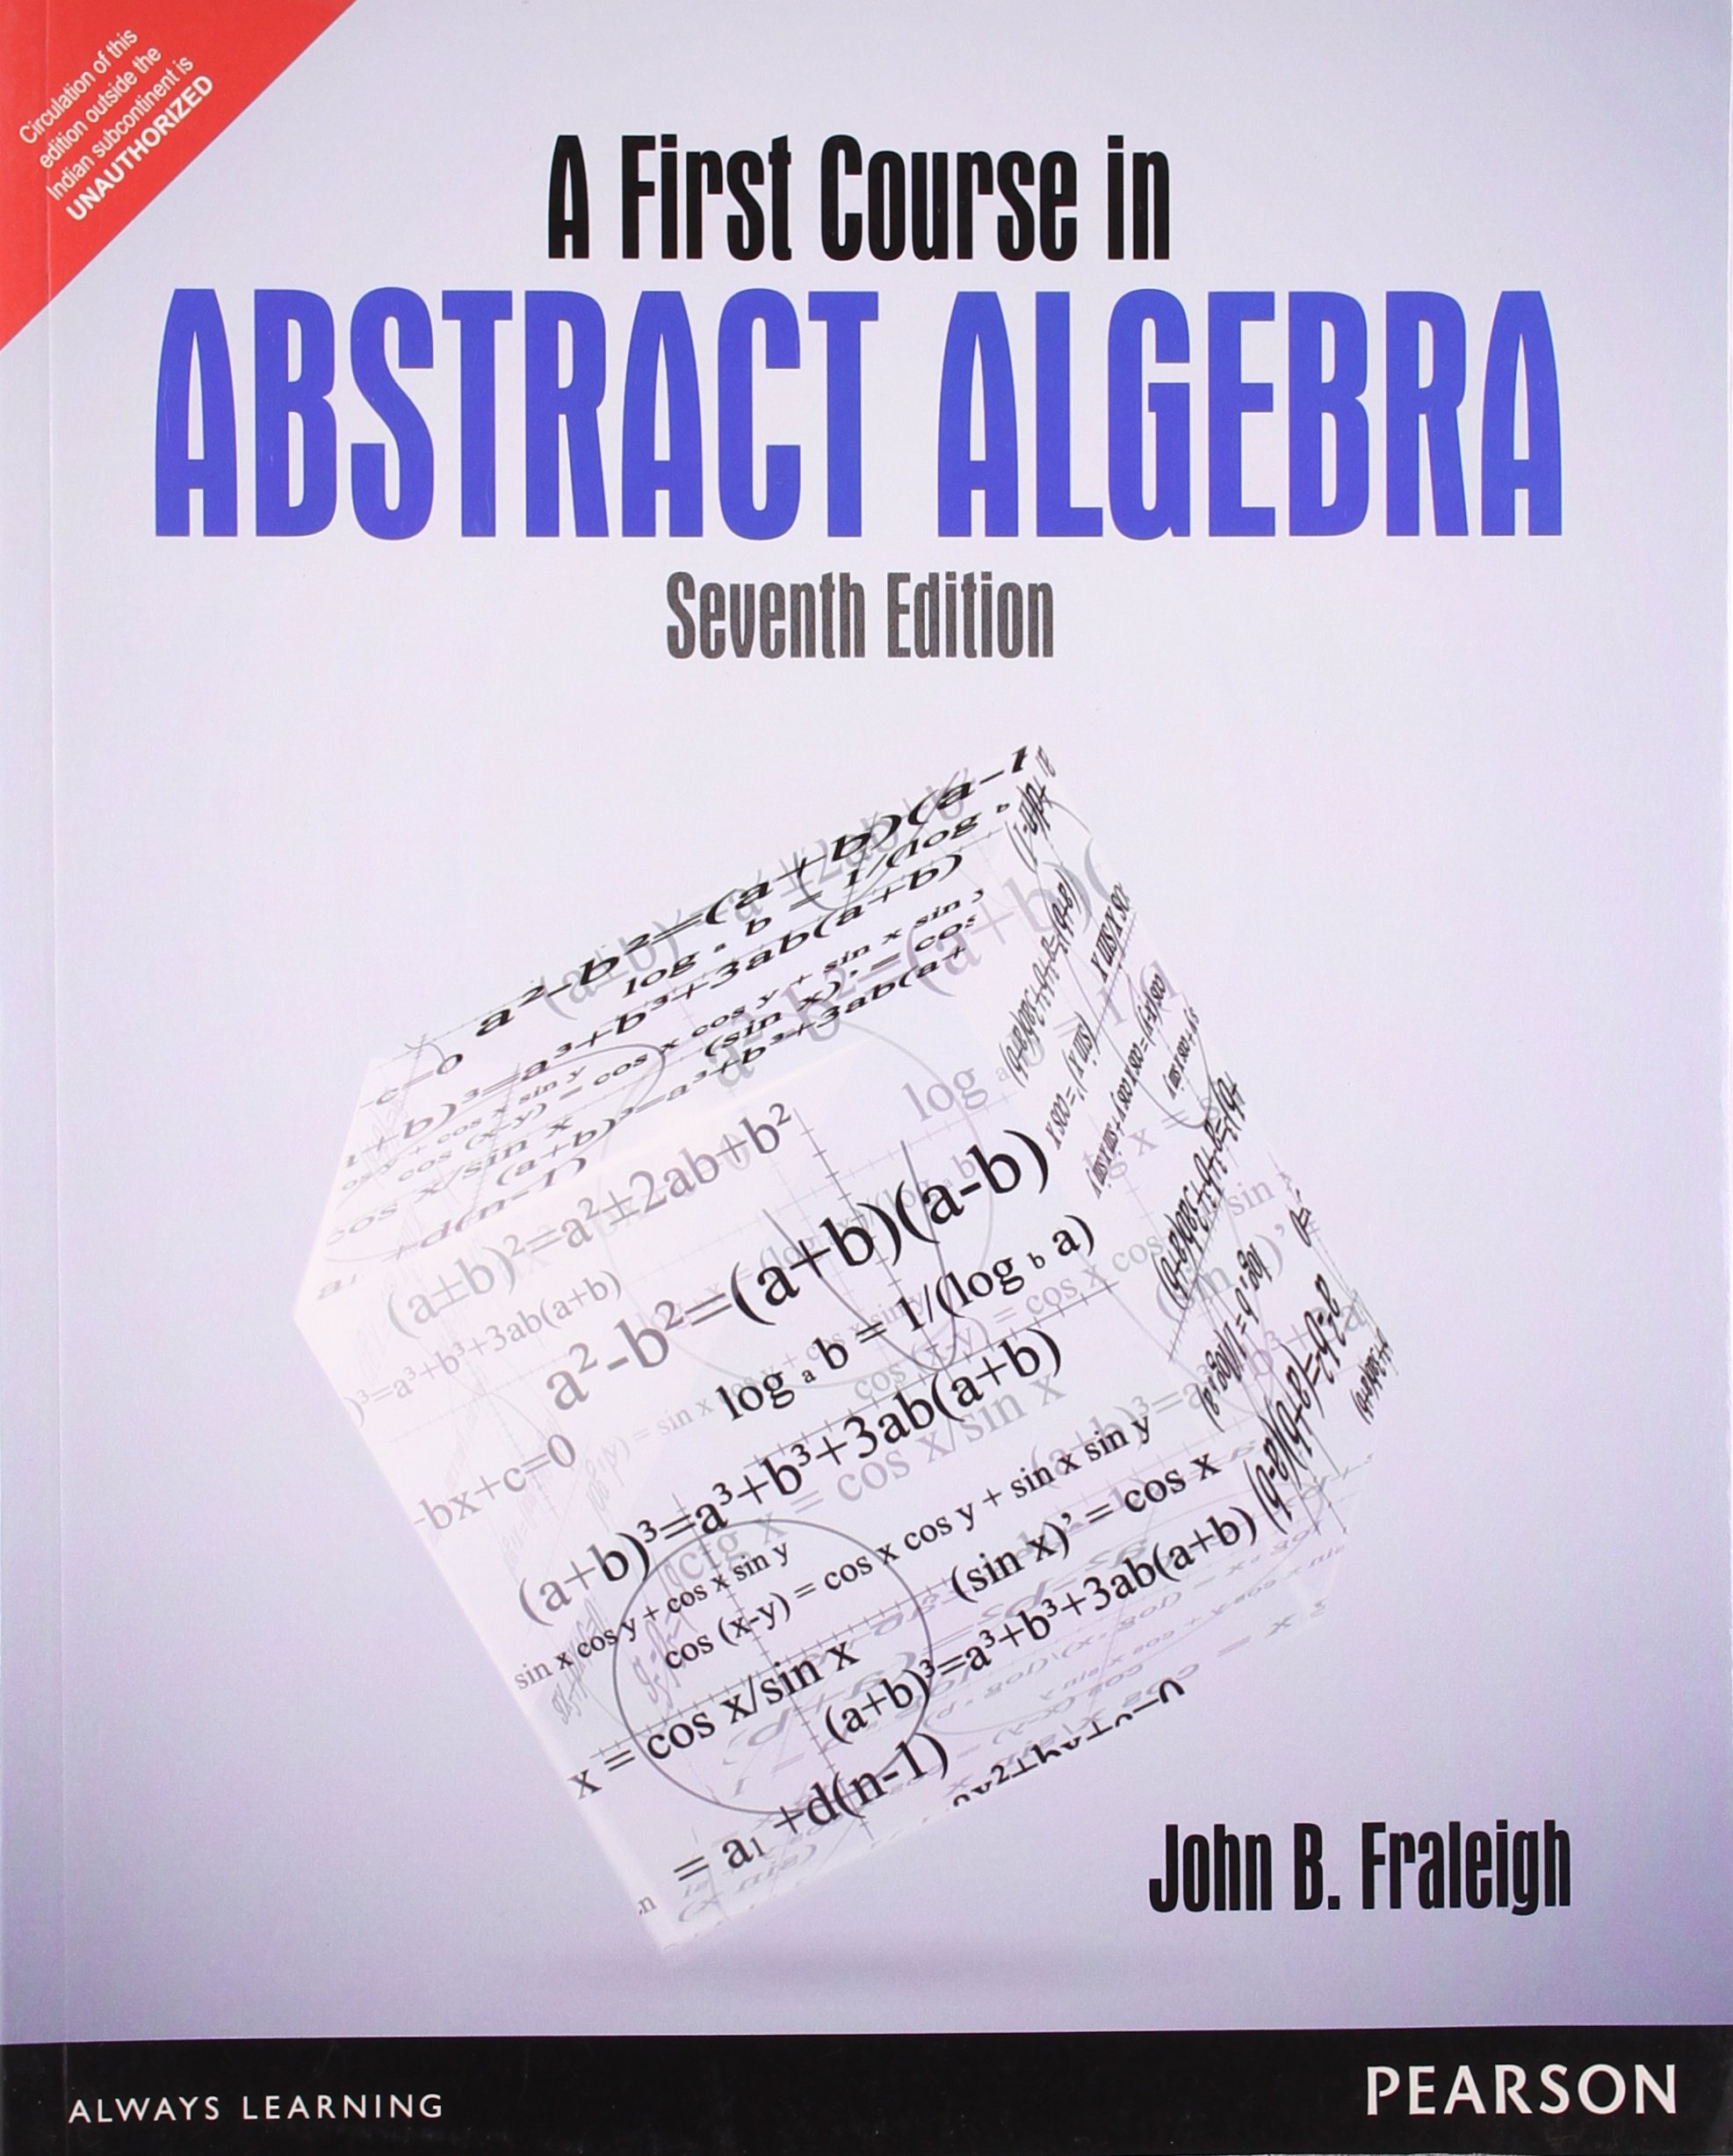 ABSTRACT ALGEBRA FRALEIGH DOWNLOAD